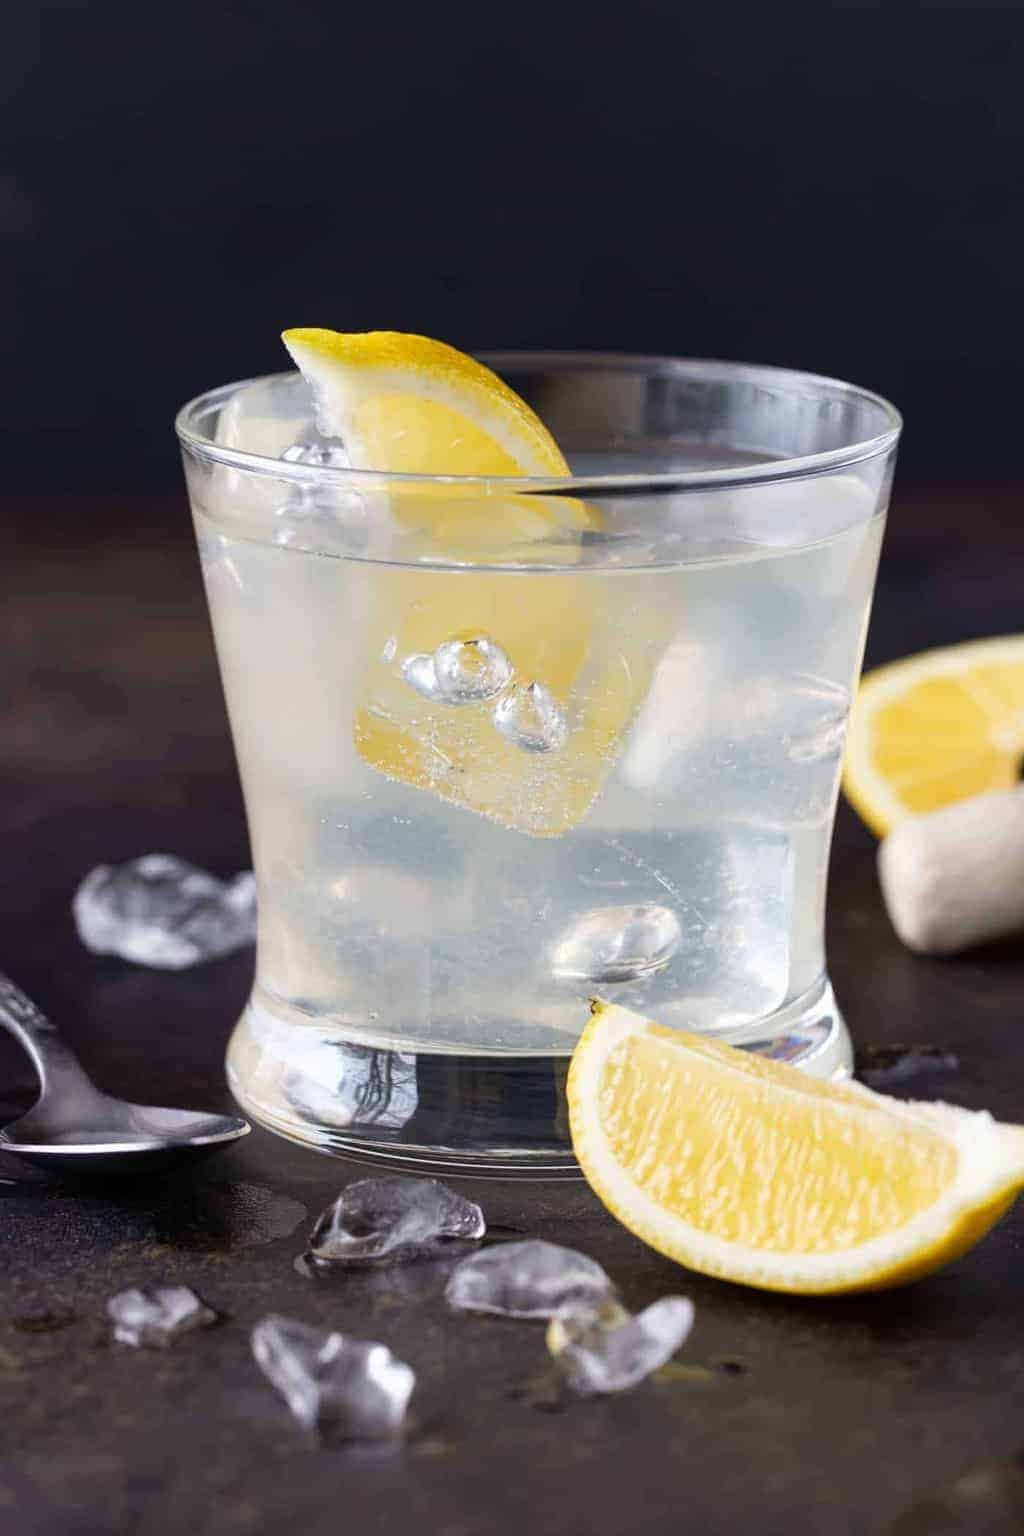 Lowball glass filled with Elderflower Vodka Soda recipe. Garnished with fresh lemon wedges.